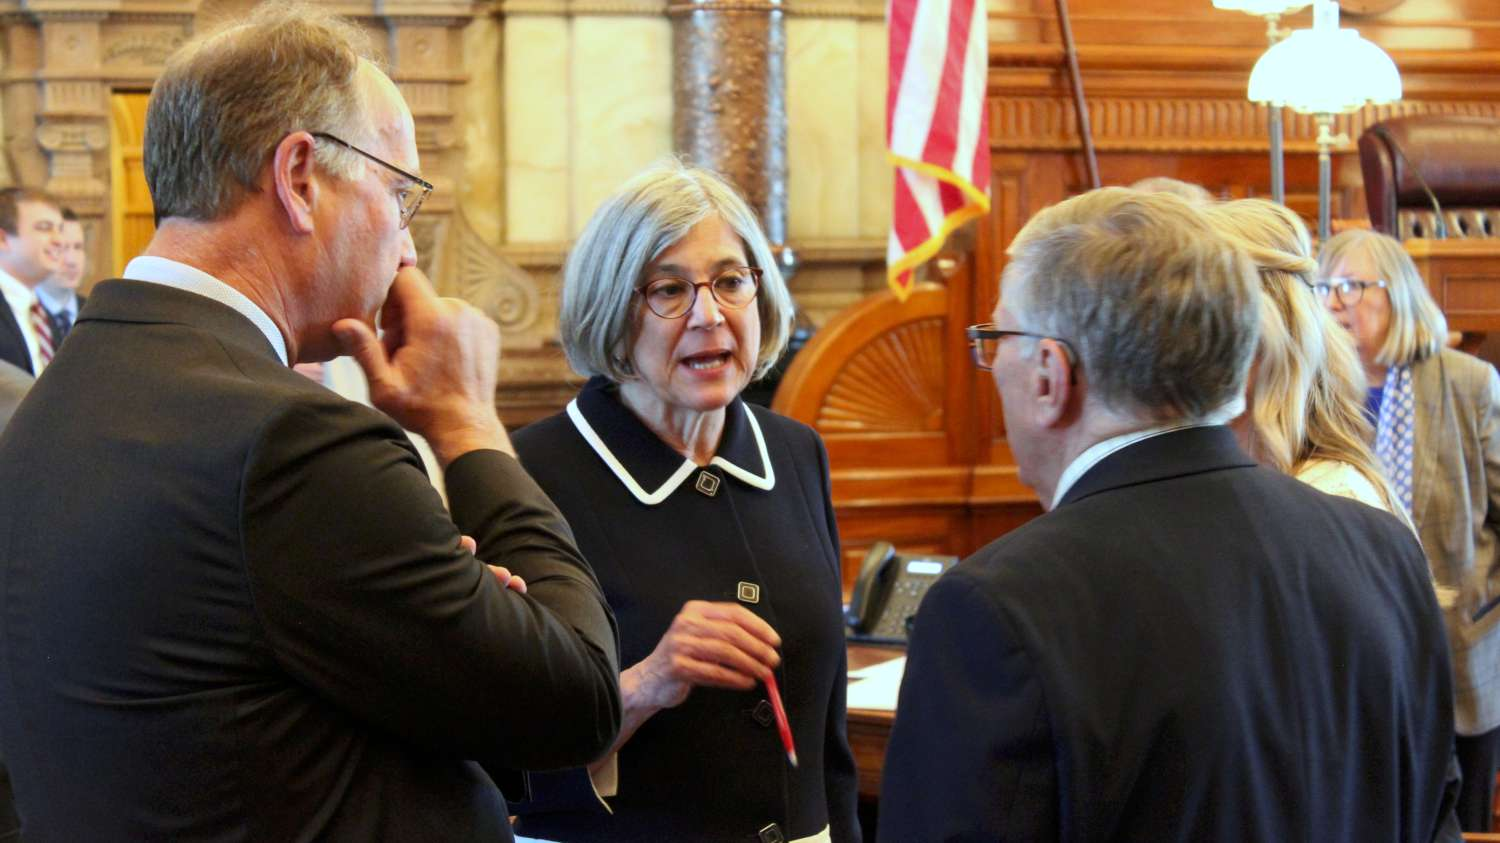 Senate President Wagle on the chamber floor earlier this year. (Photo by Stephen Koranda)